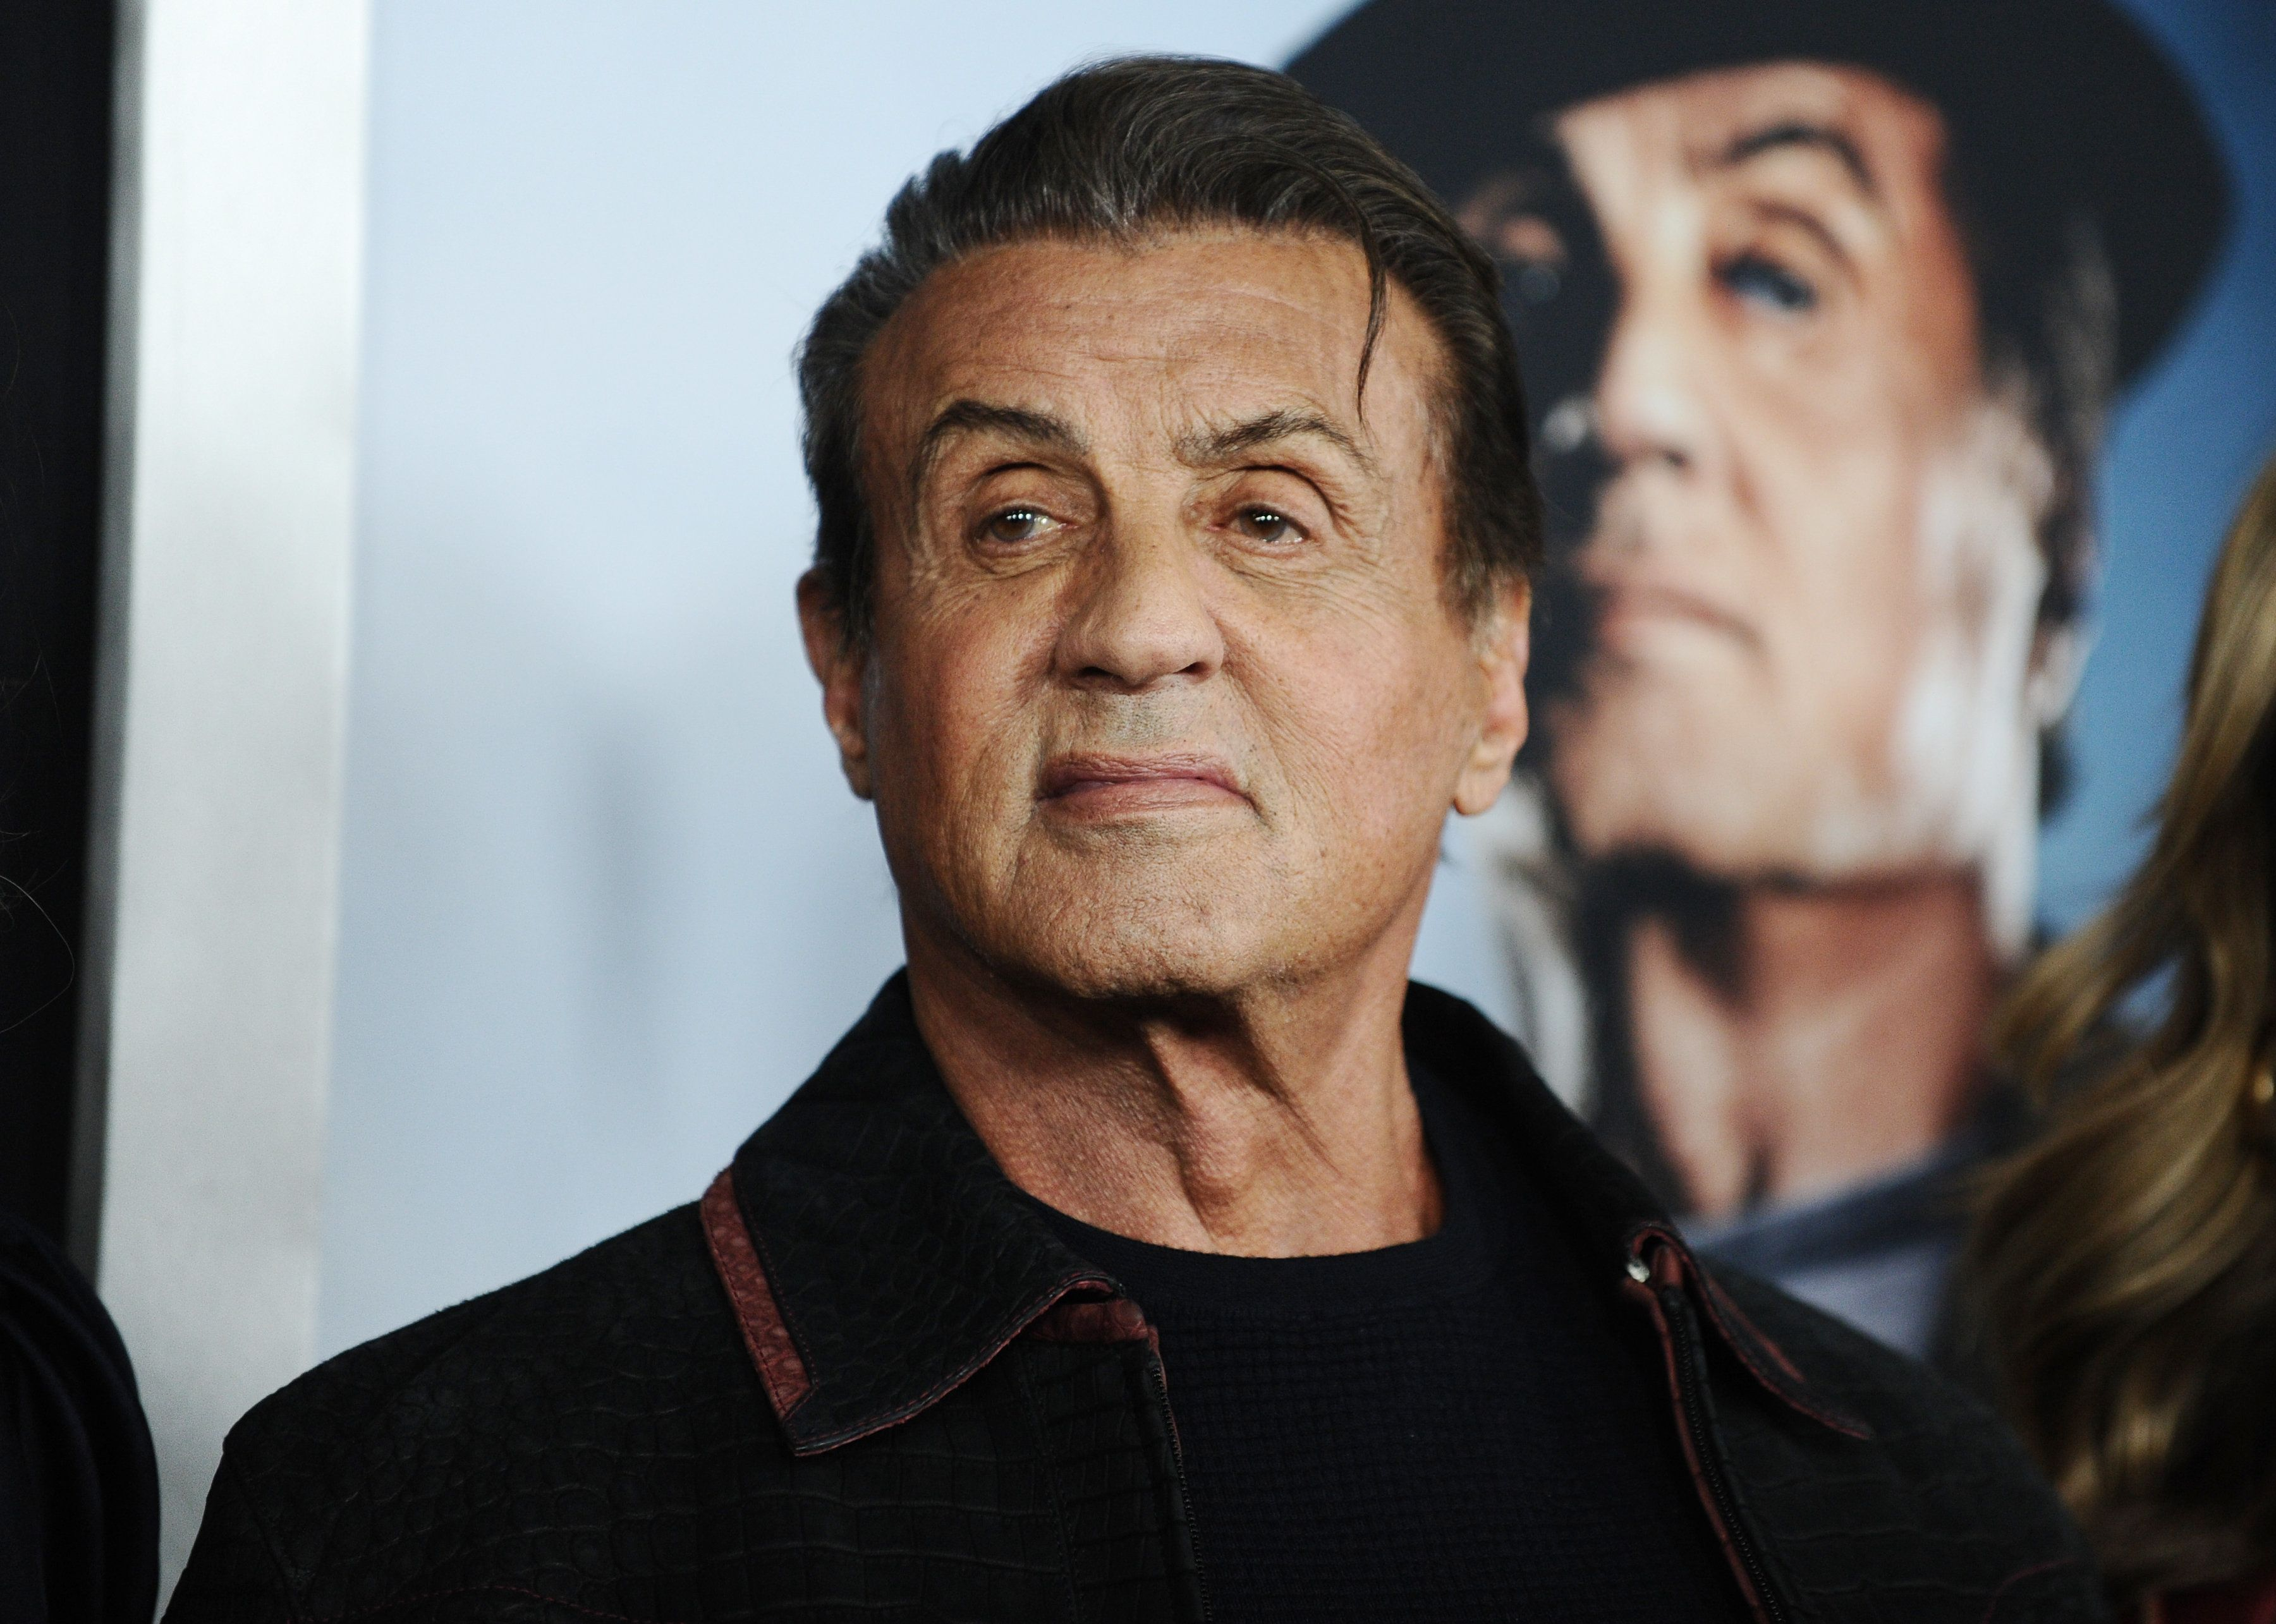 NEW YORK, NEW YORK - NOVEMBER 14: Sylvester Stallone attends the 'Creed II' New York Premiere at AMC Loews Lincoln Square on November 14, 2018 in New York City. (Photo by Daniel Zuchnik/WireImage)